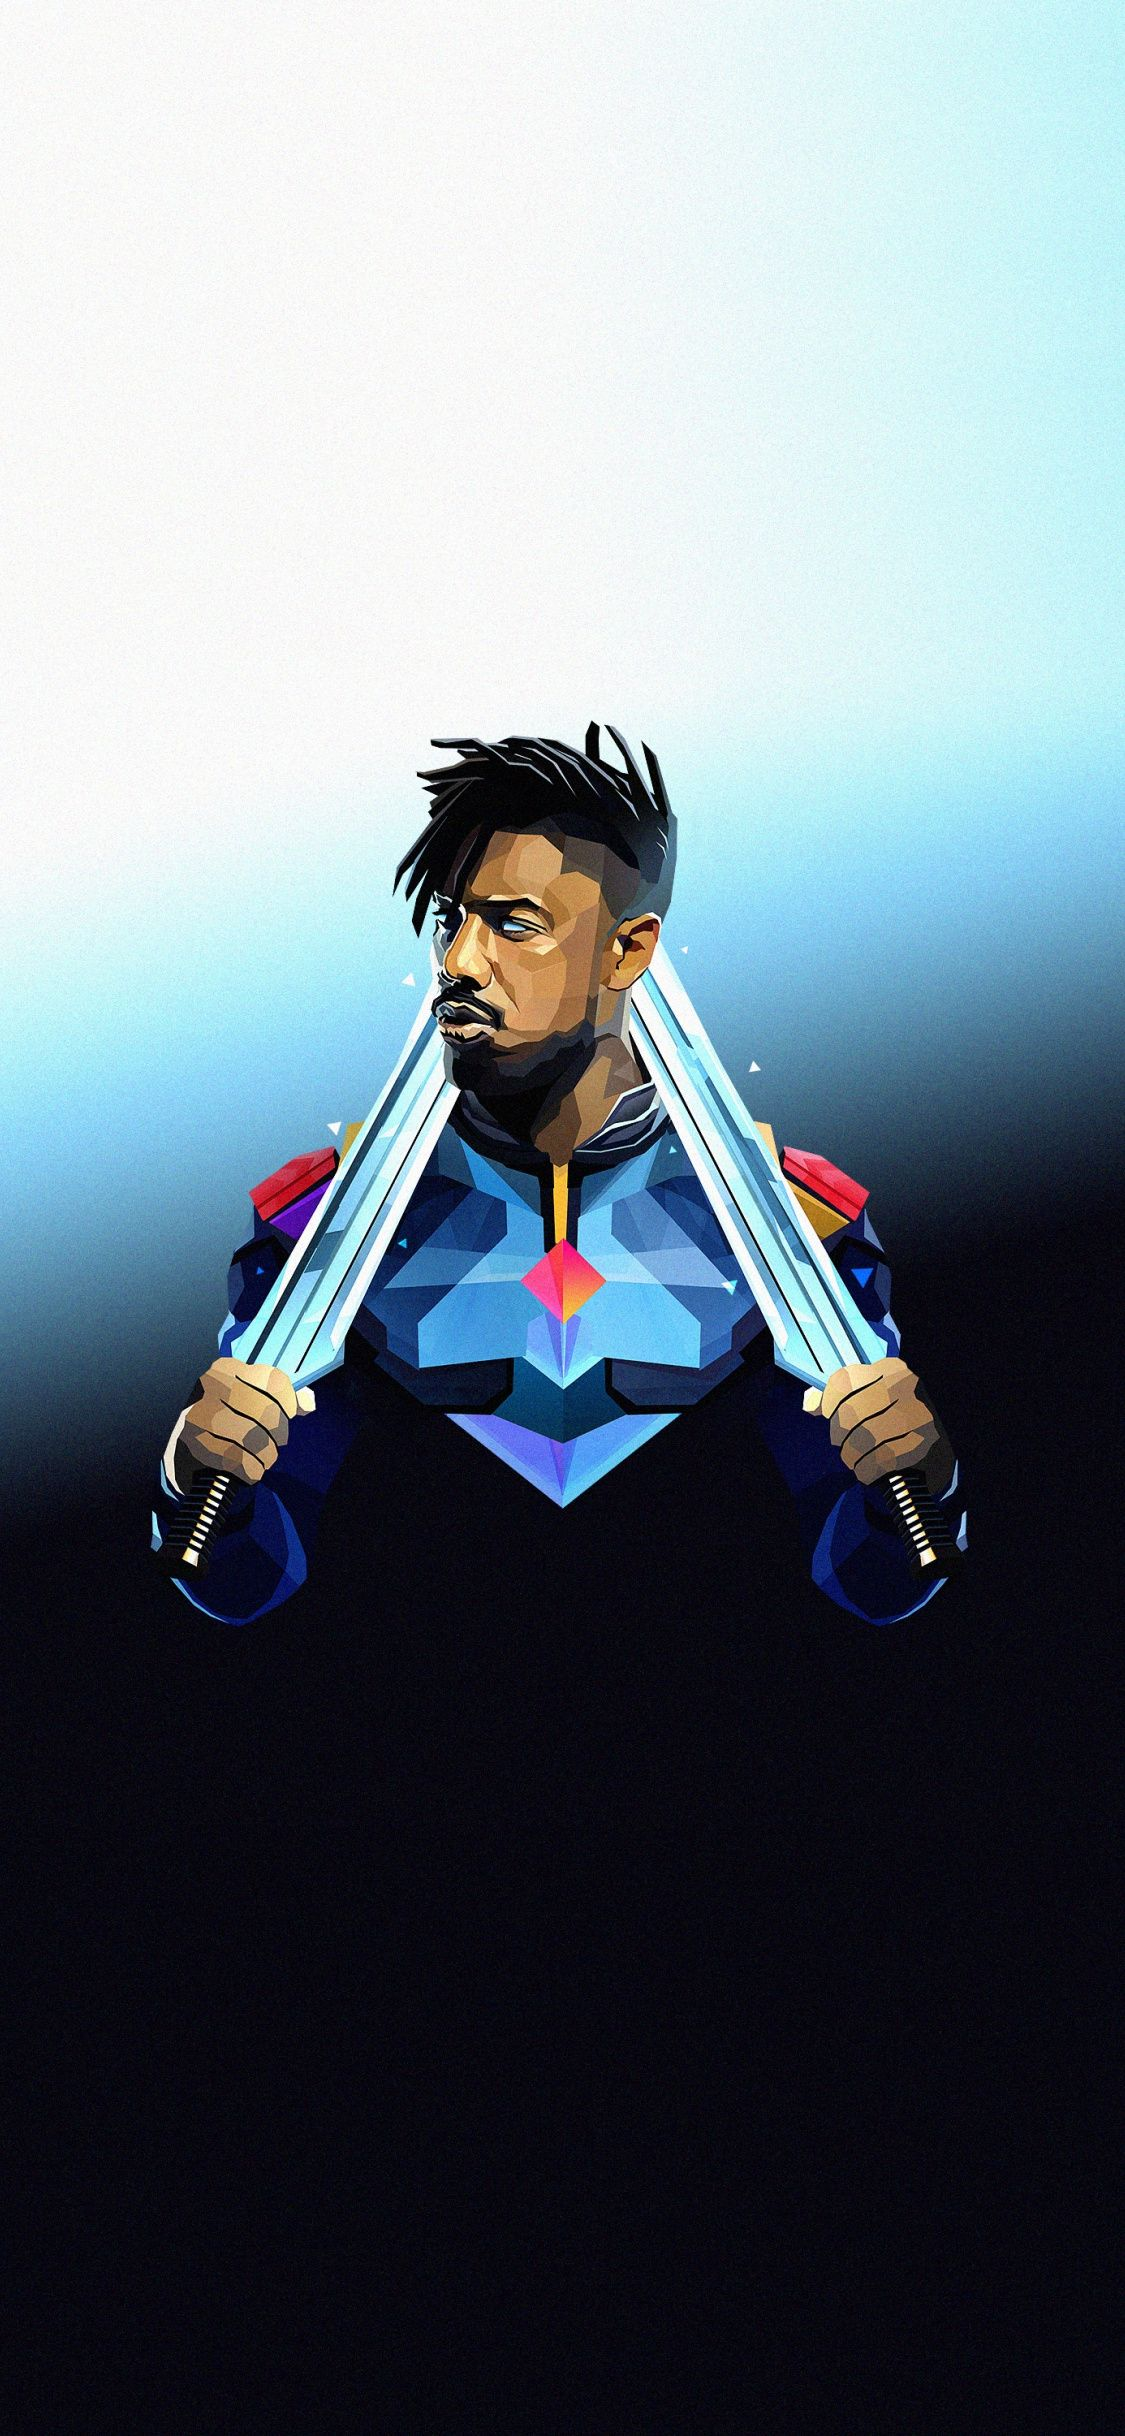 Michael B Jordan Villain Erik Killmonger Movie Art Wallpaper Black Panther Marvel Black Panther Marvel Artwork